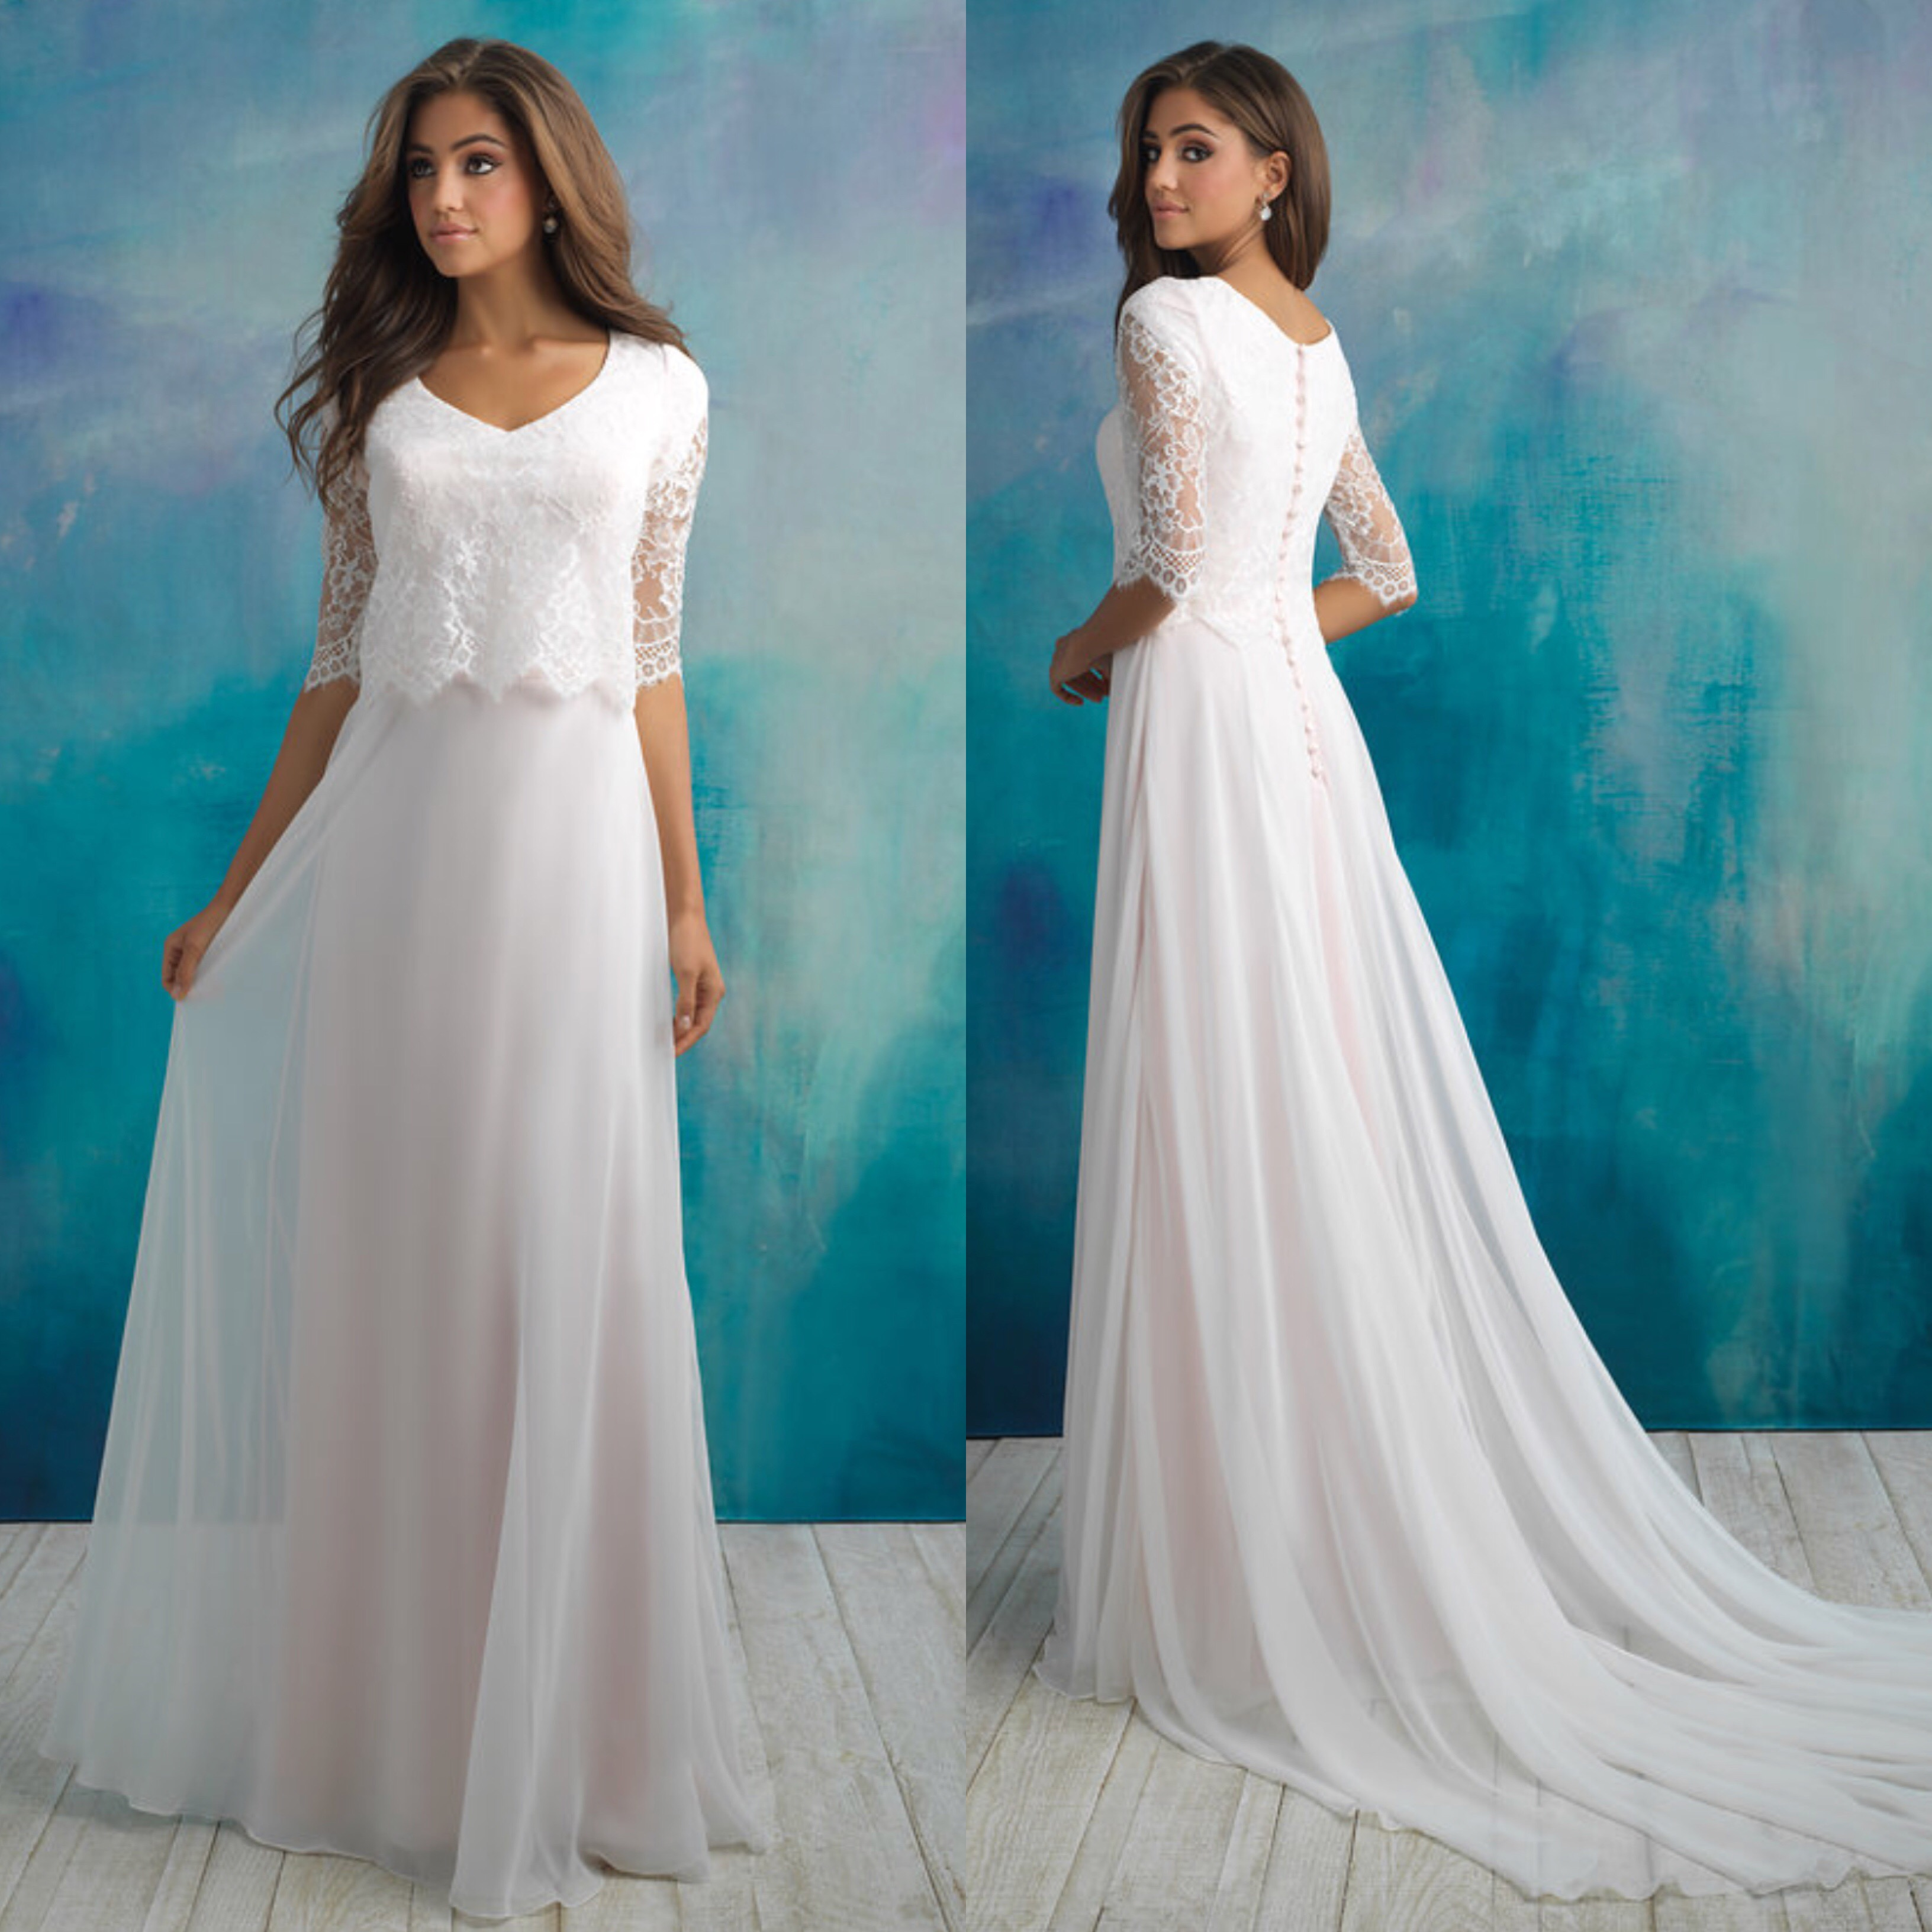 Bridal Collection 1 - The Hitching Post - Modest Wedding Dresses ...